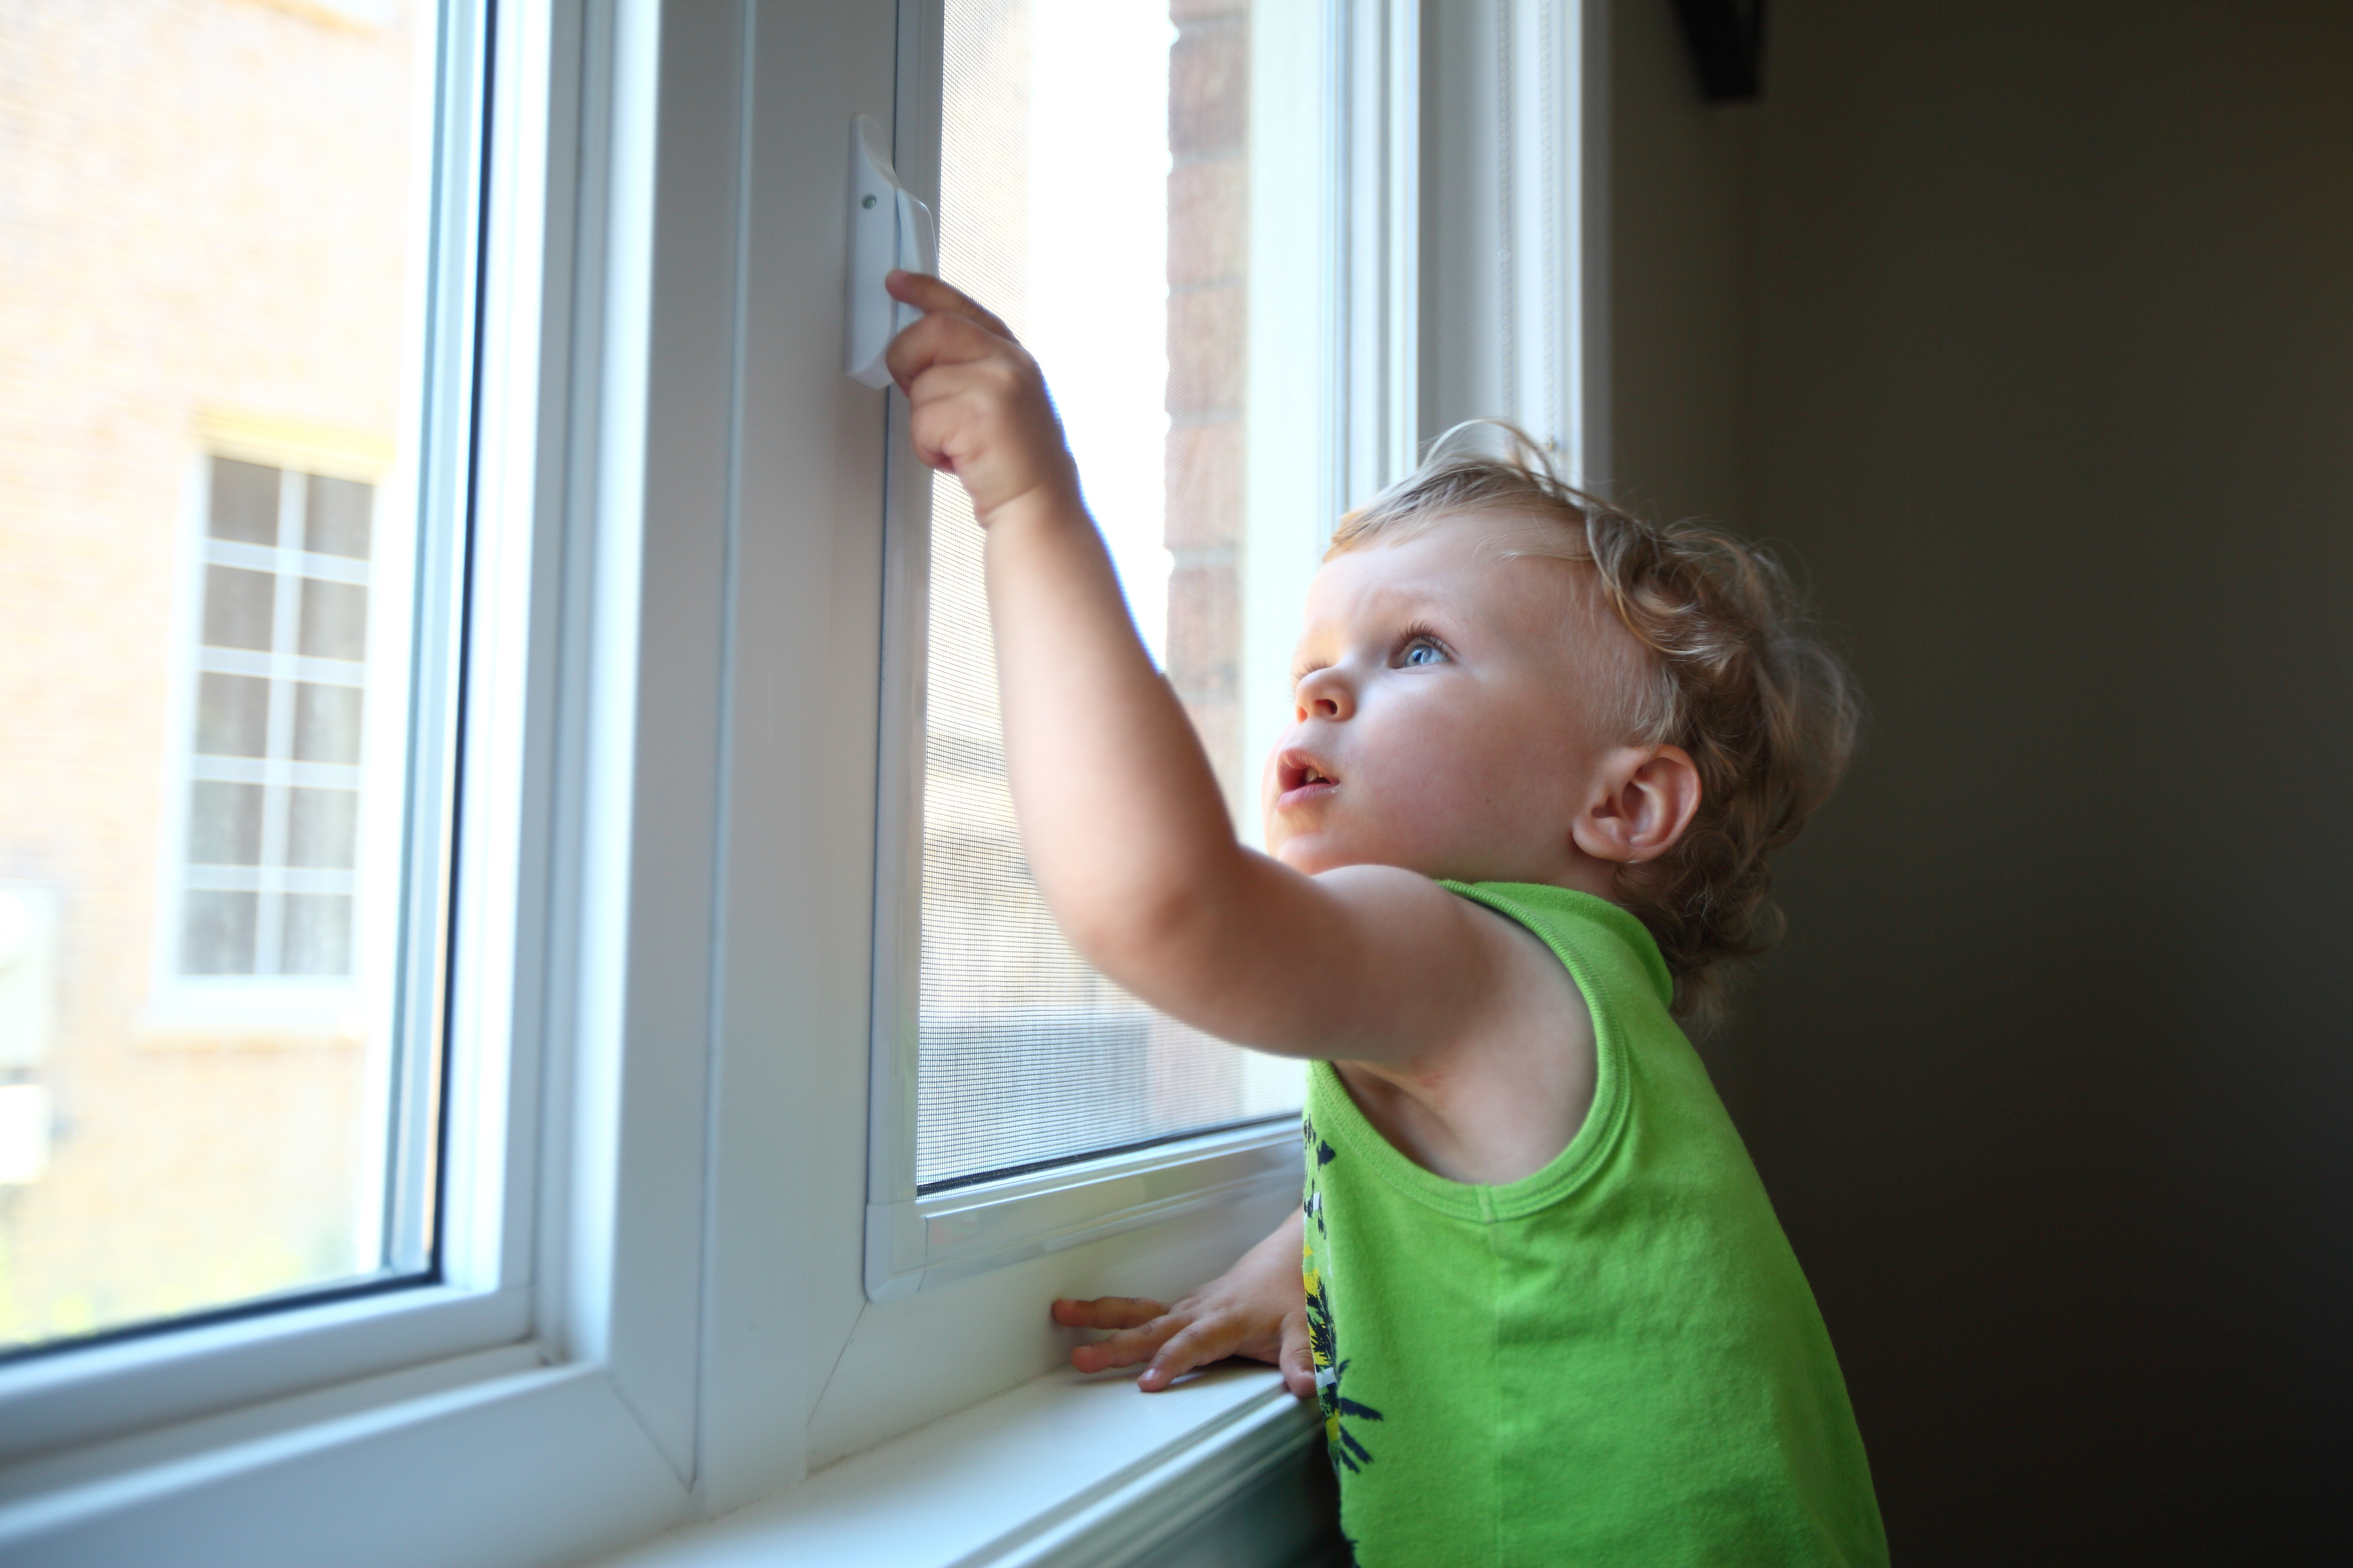 Childproofing Your Home: How to Protect Your Toddler on avanteinsurance.com